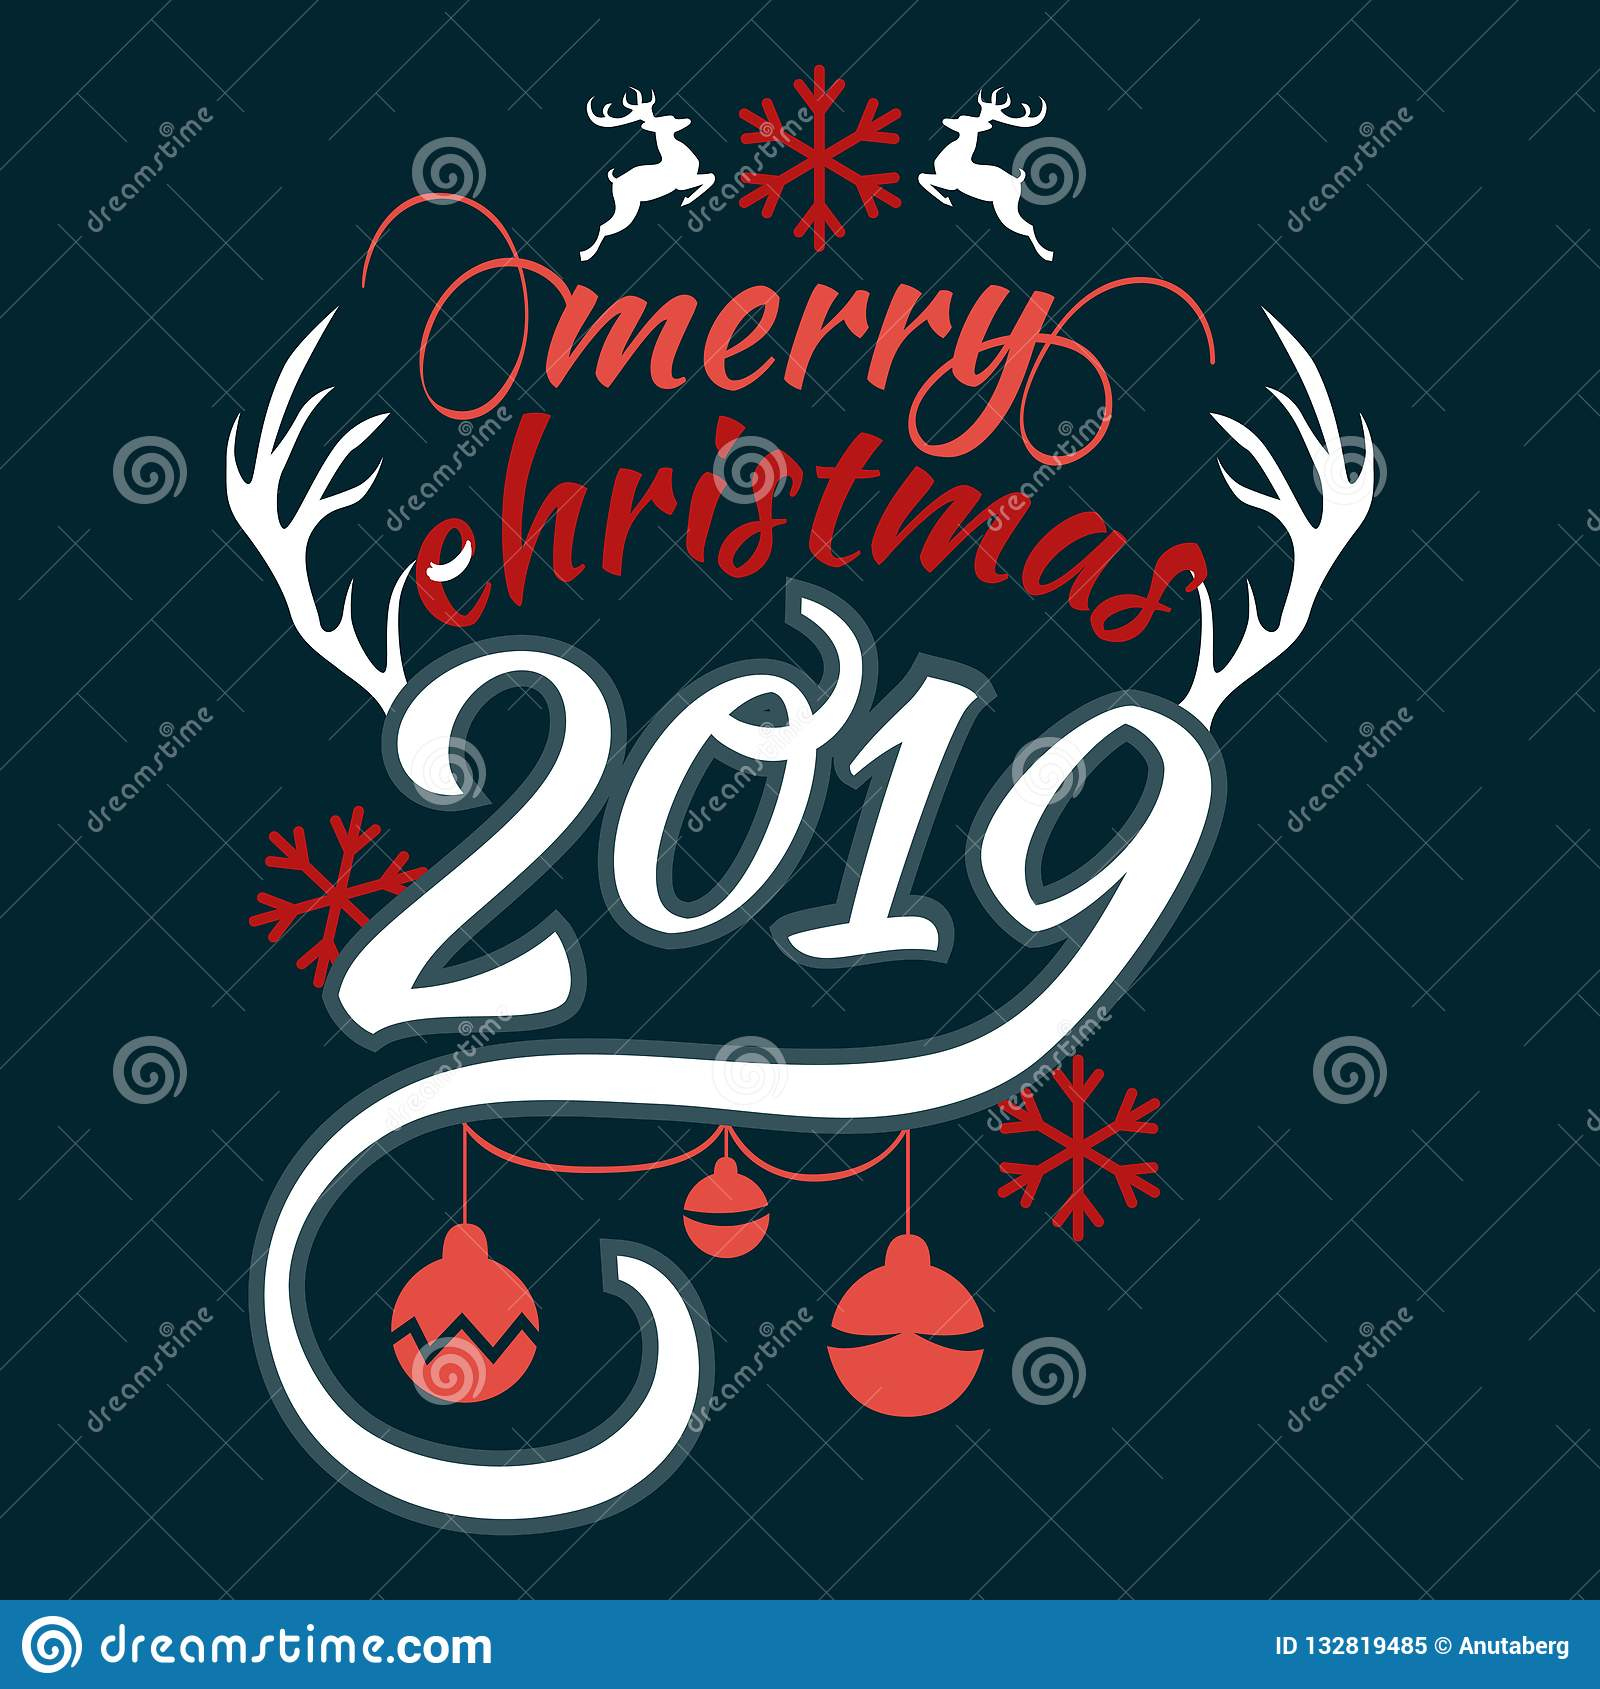 Have Very Merry Christmas And Happy New Year 2019 We Wish You